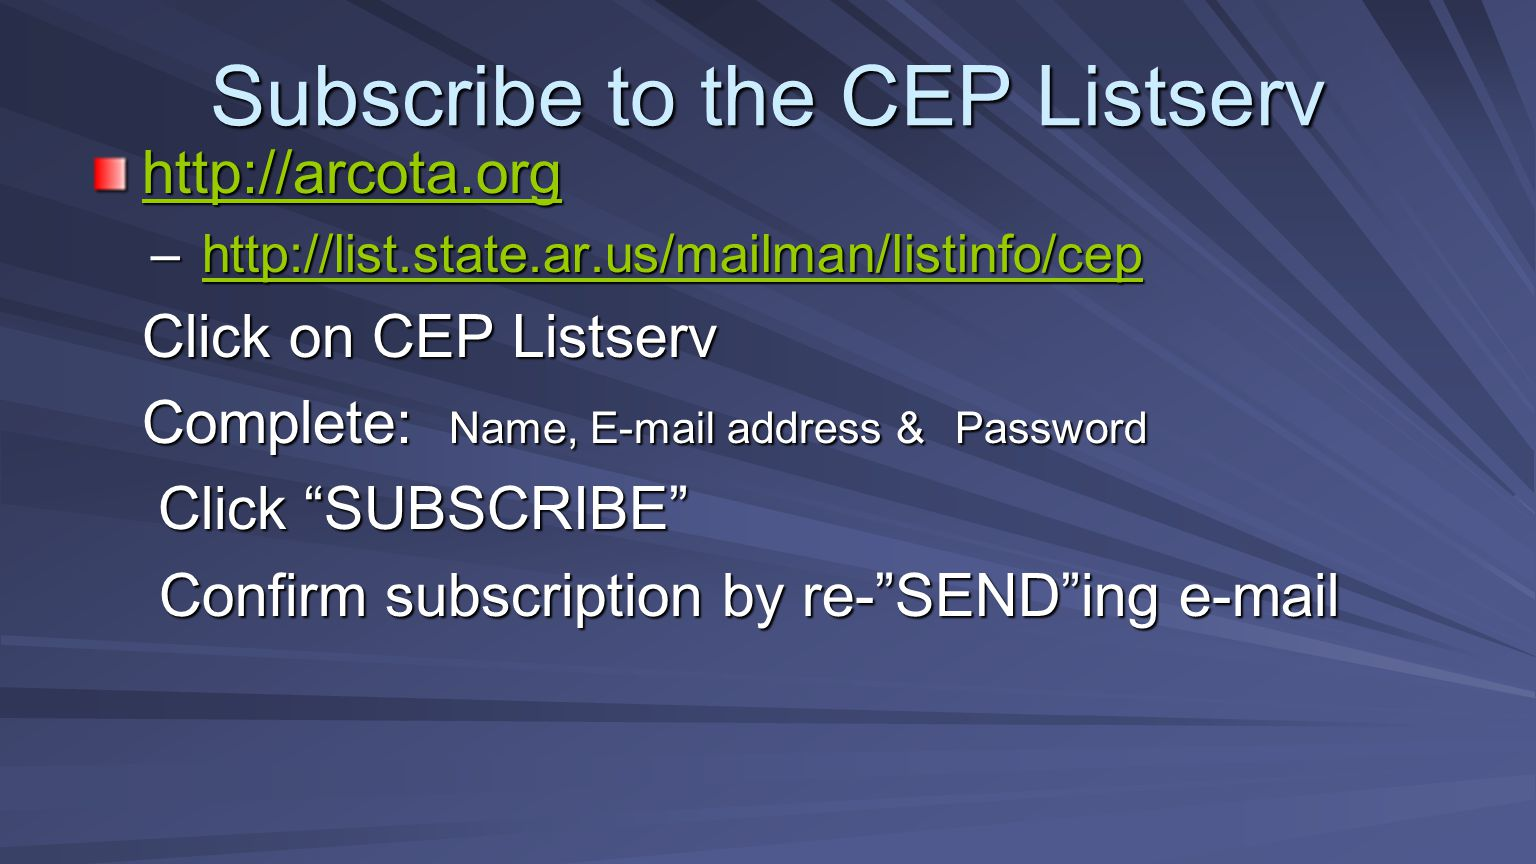 Subscribe to the CEP Listserv